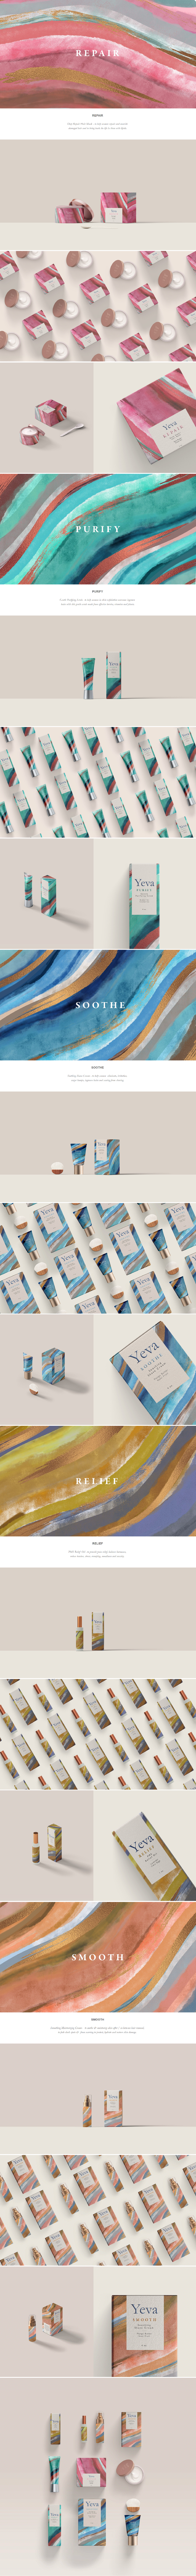 Packaging,Branding,Graphic Design